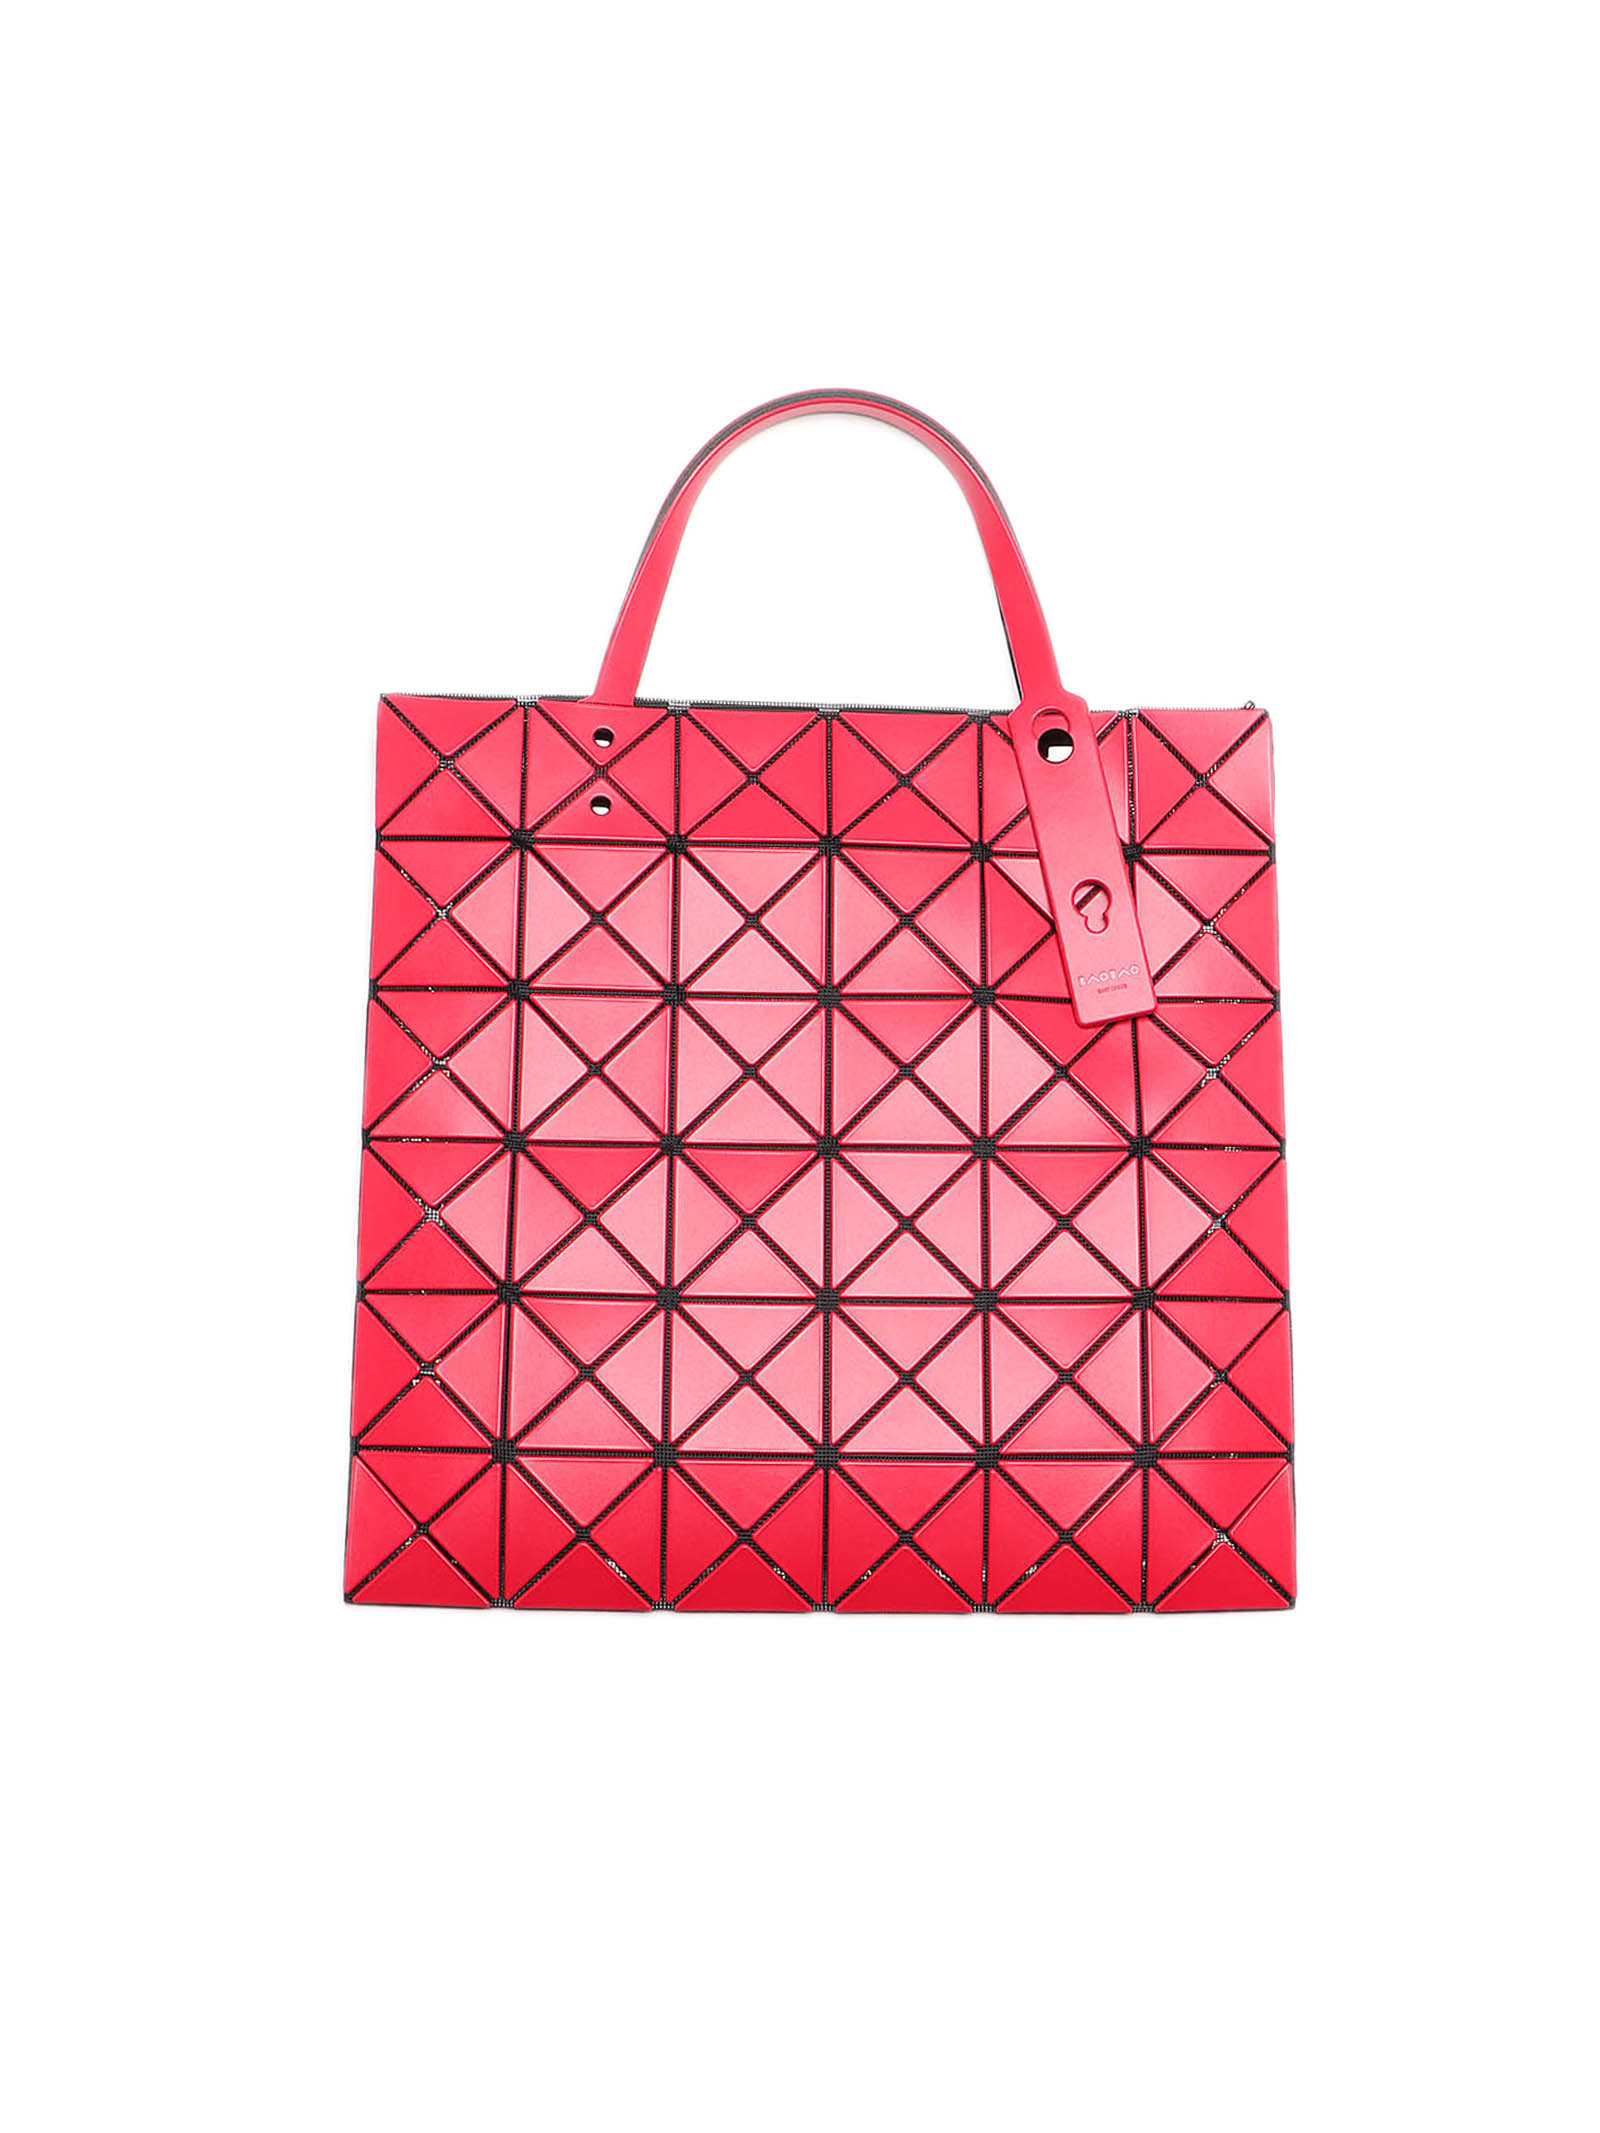 Picture of Bao Bao Issey Miyake | Tote Lucent Matte